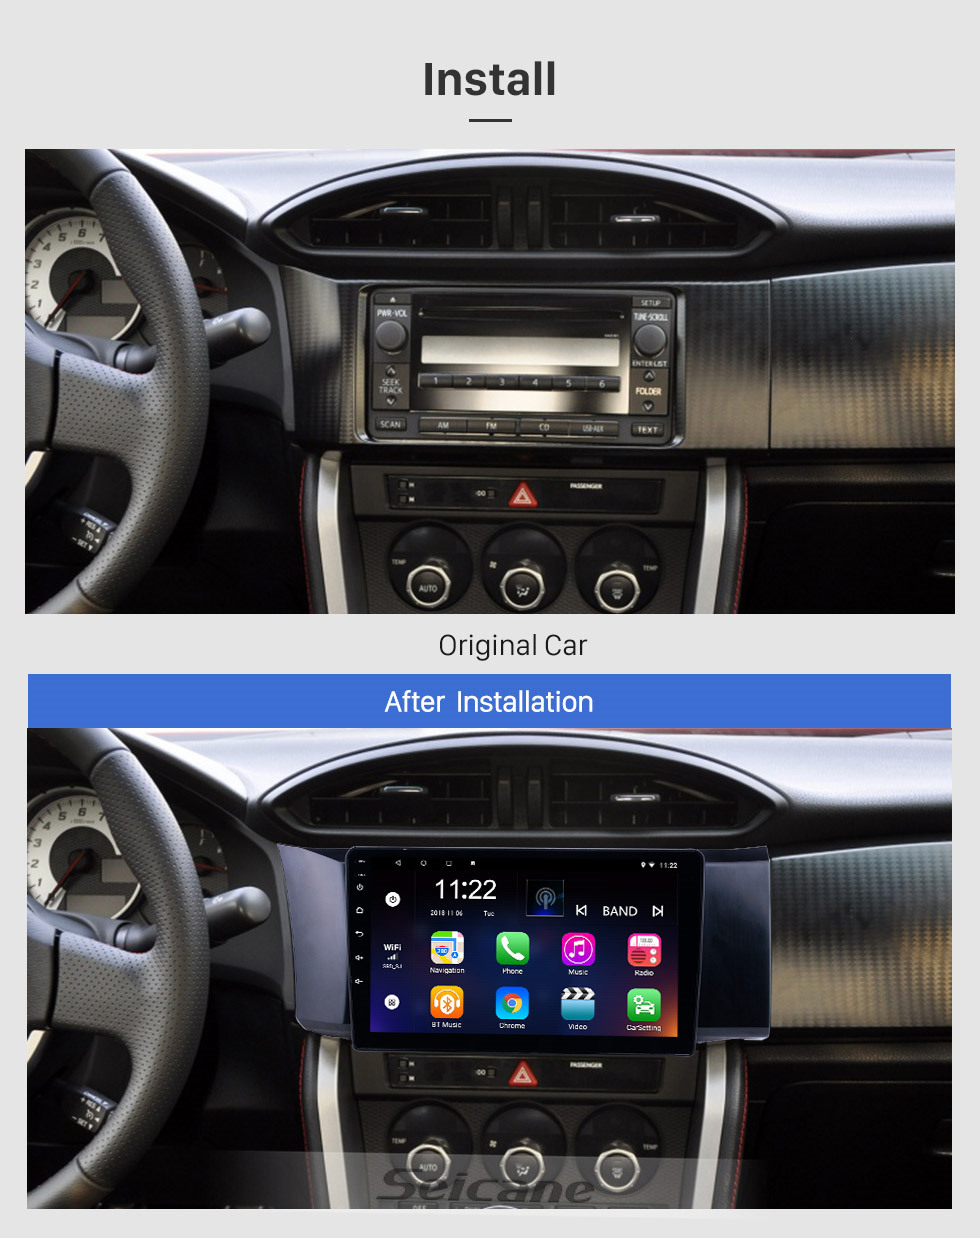 Seicane 9 inch GPS Navigation Radio Android 10.0 for 2013-2014 Toyota 86 LHD With HD Touchscreen Bluetooth support Carplay Backup camera